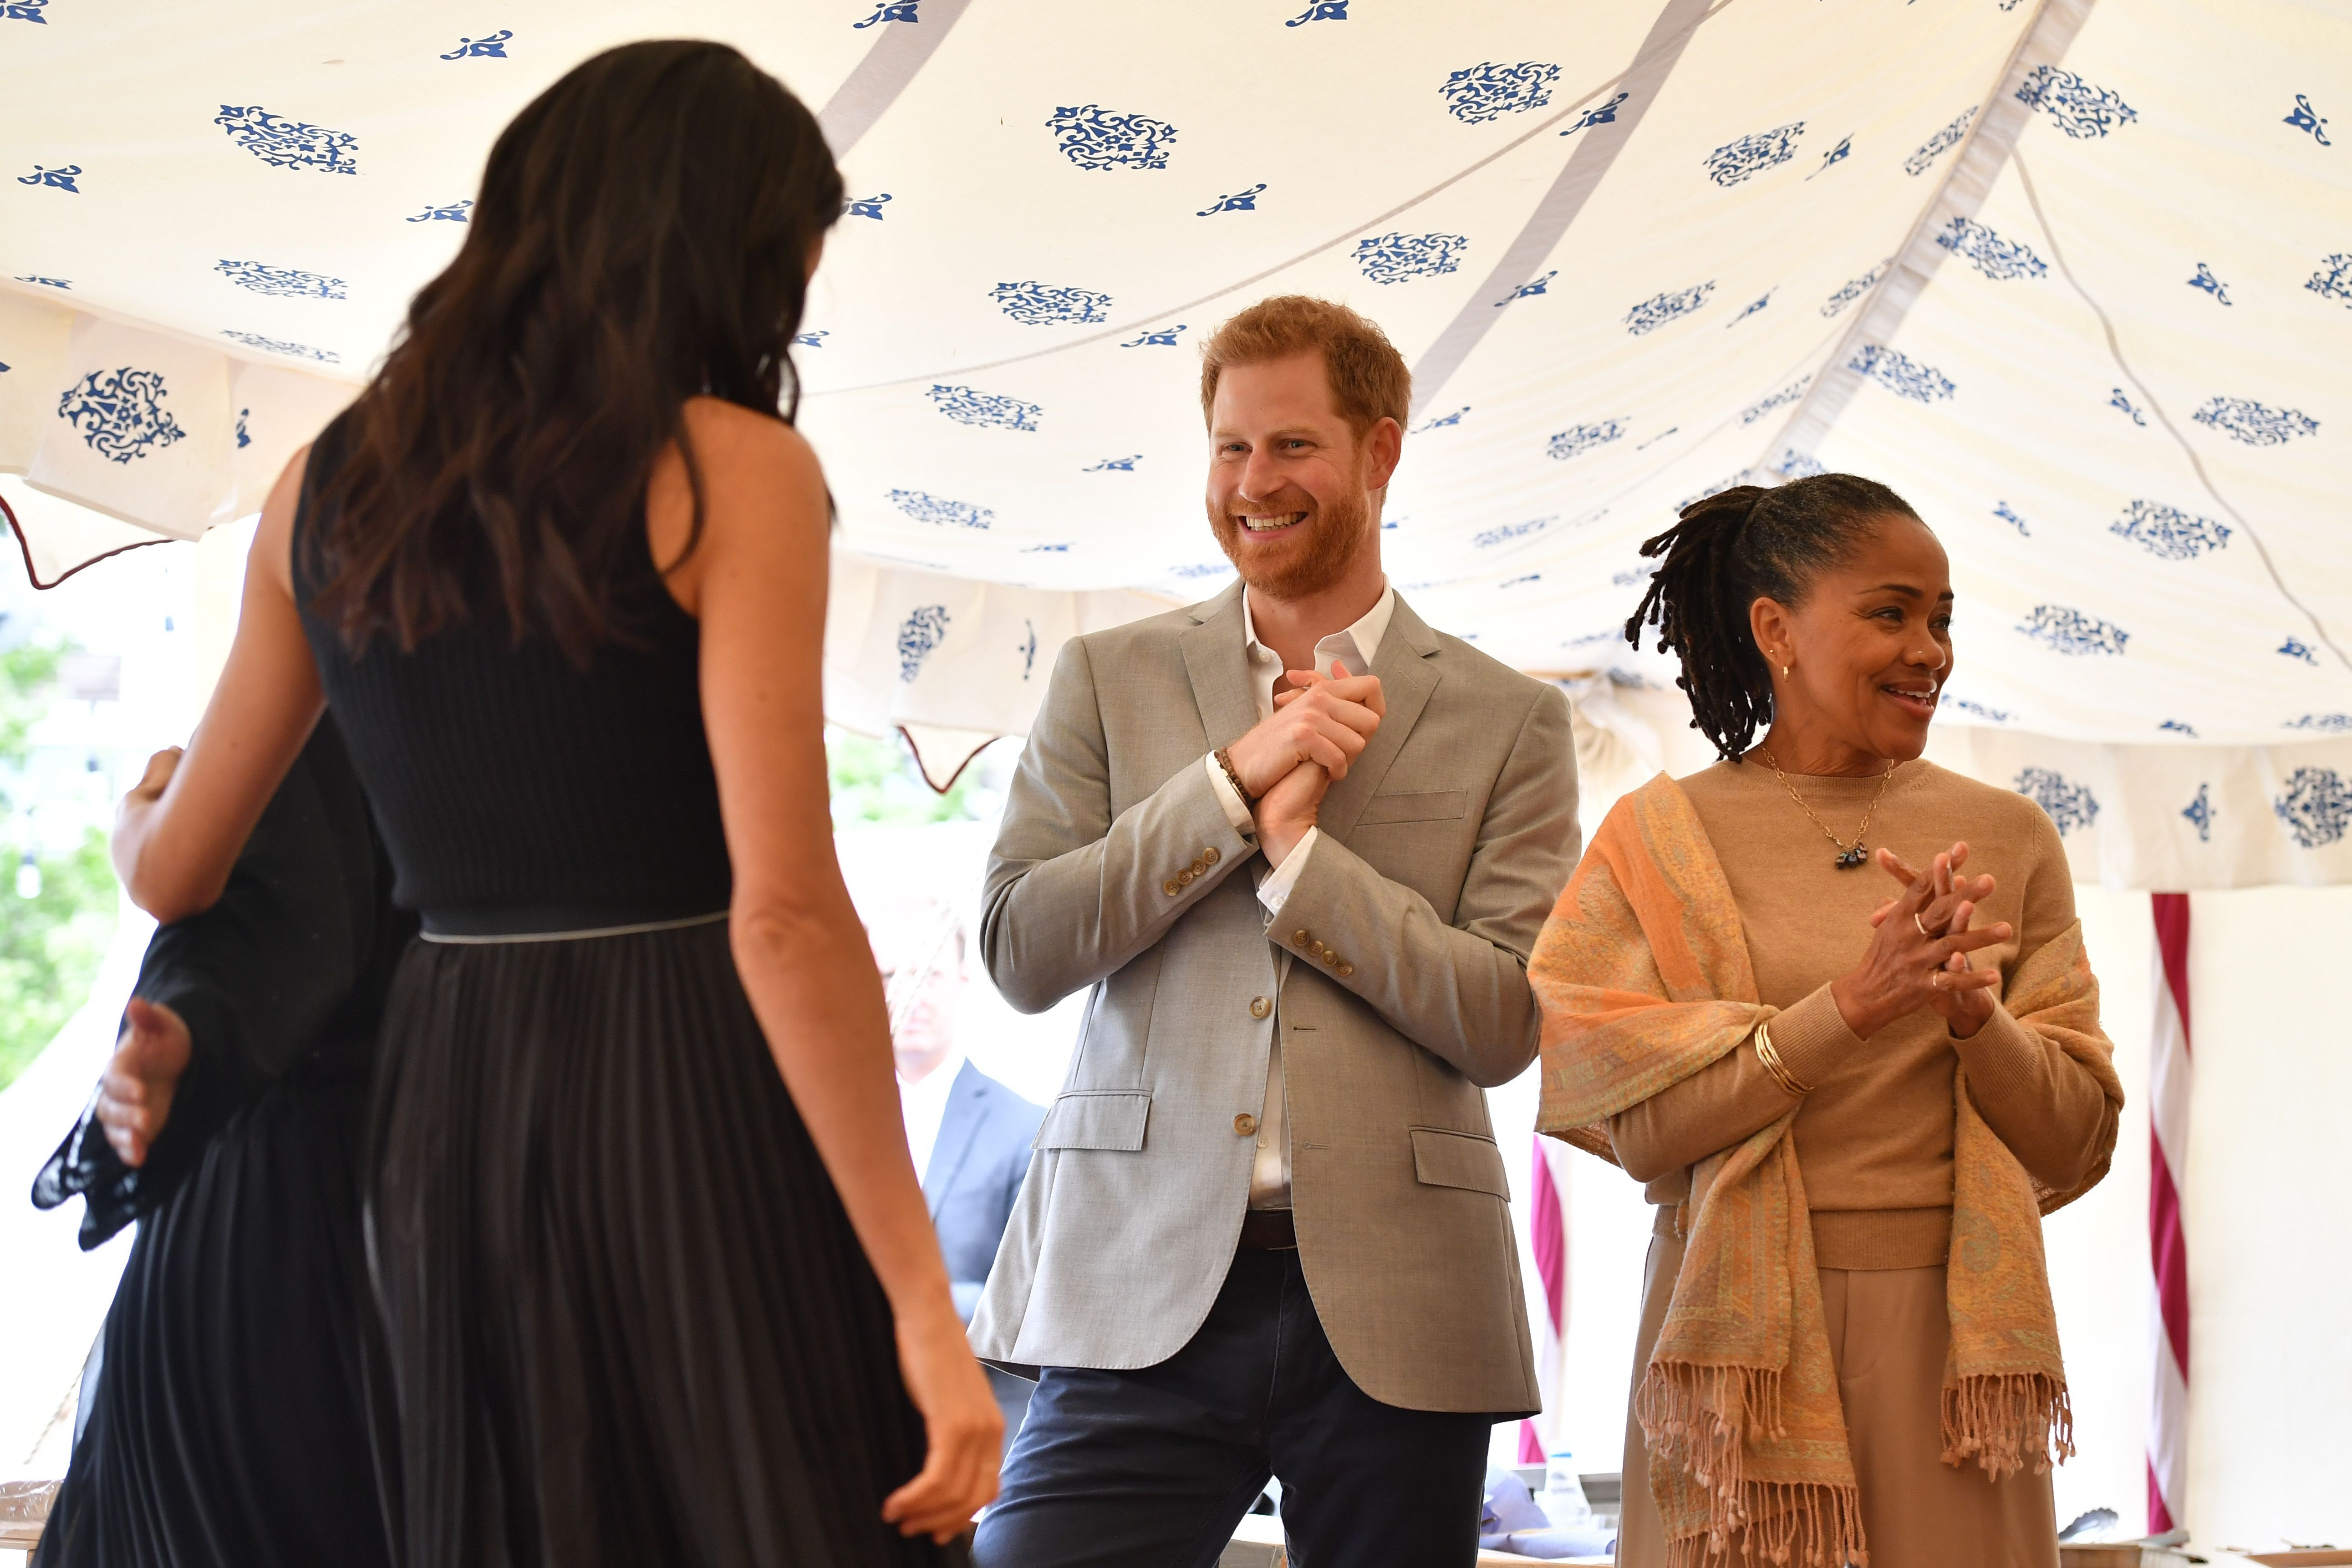 Prince Harry and Meghan Markle are speaking about their marriage plans openly'